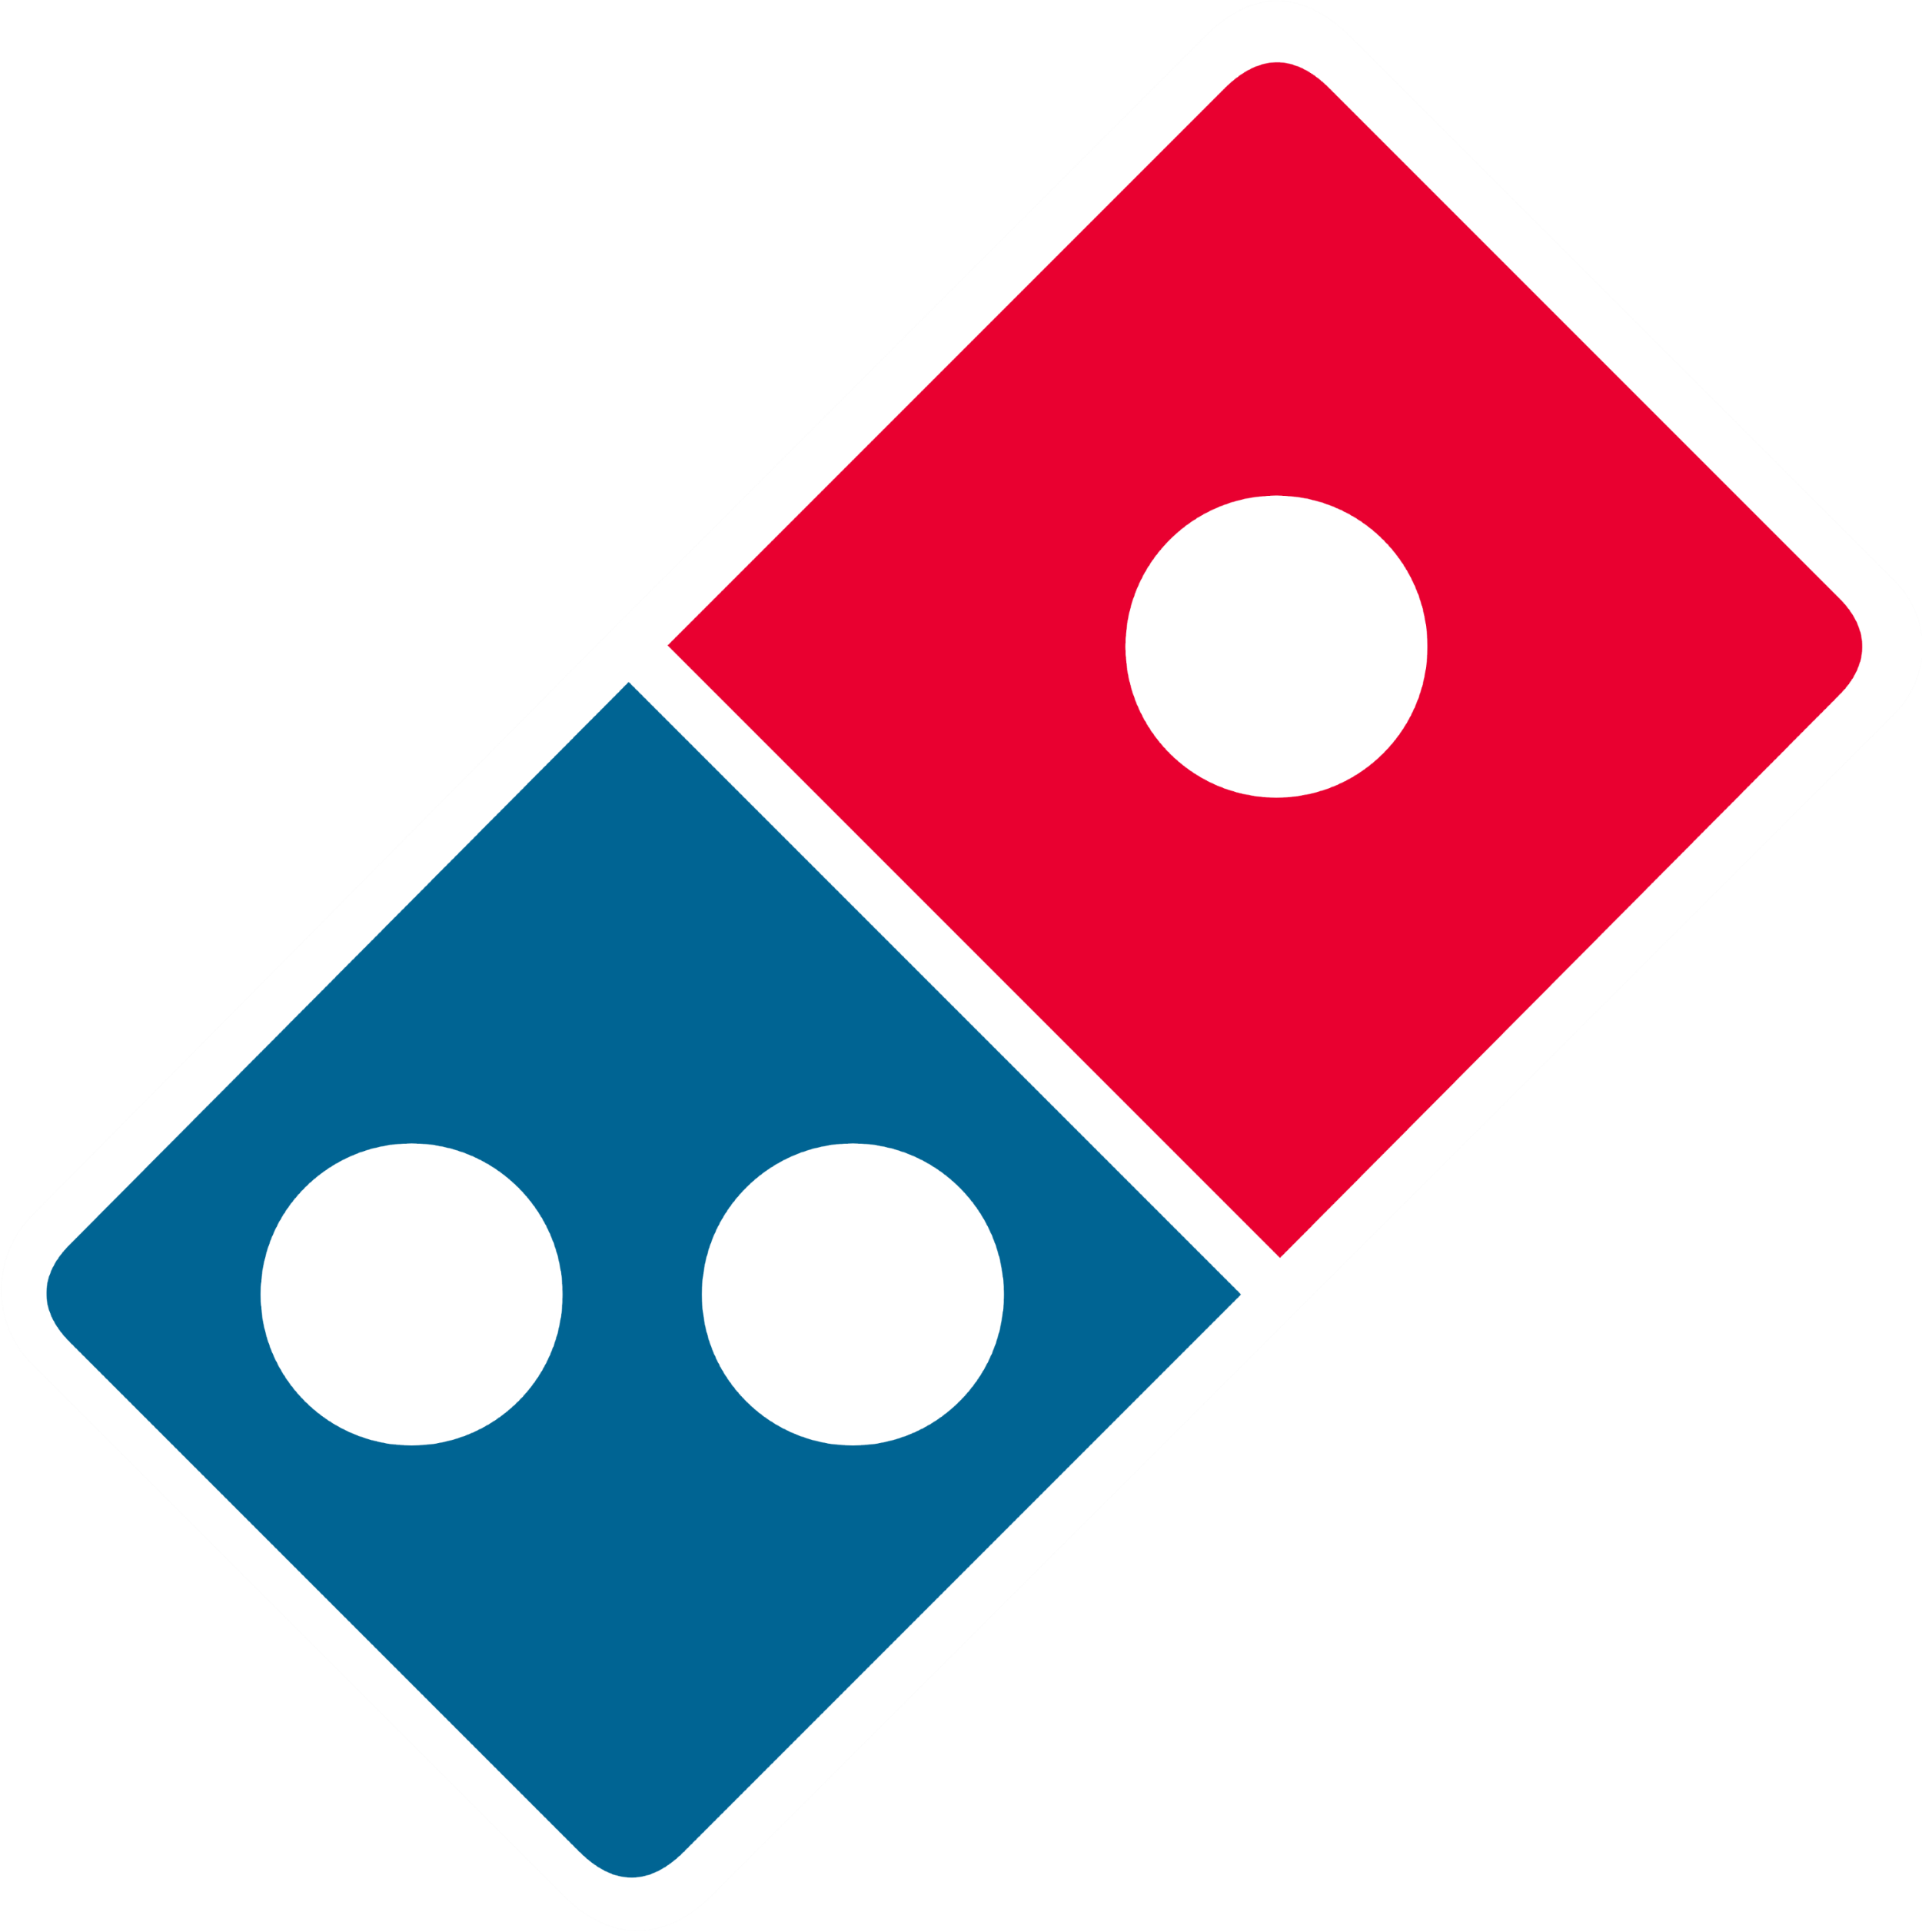 Domino s pizza logos download for Domino pizza